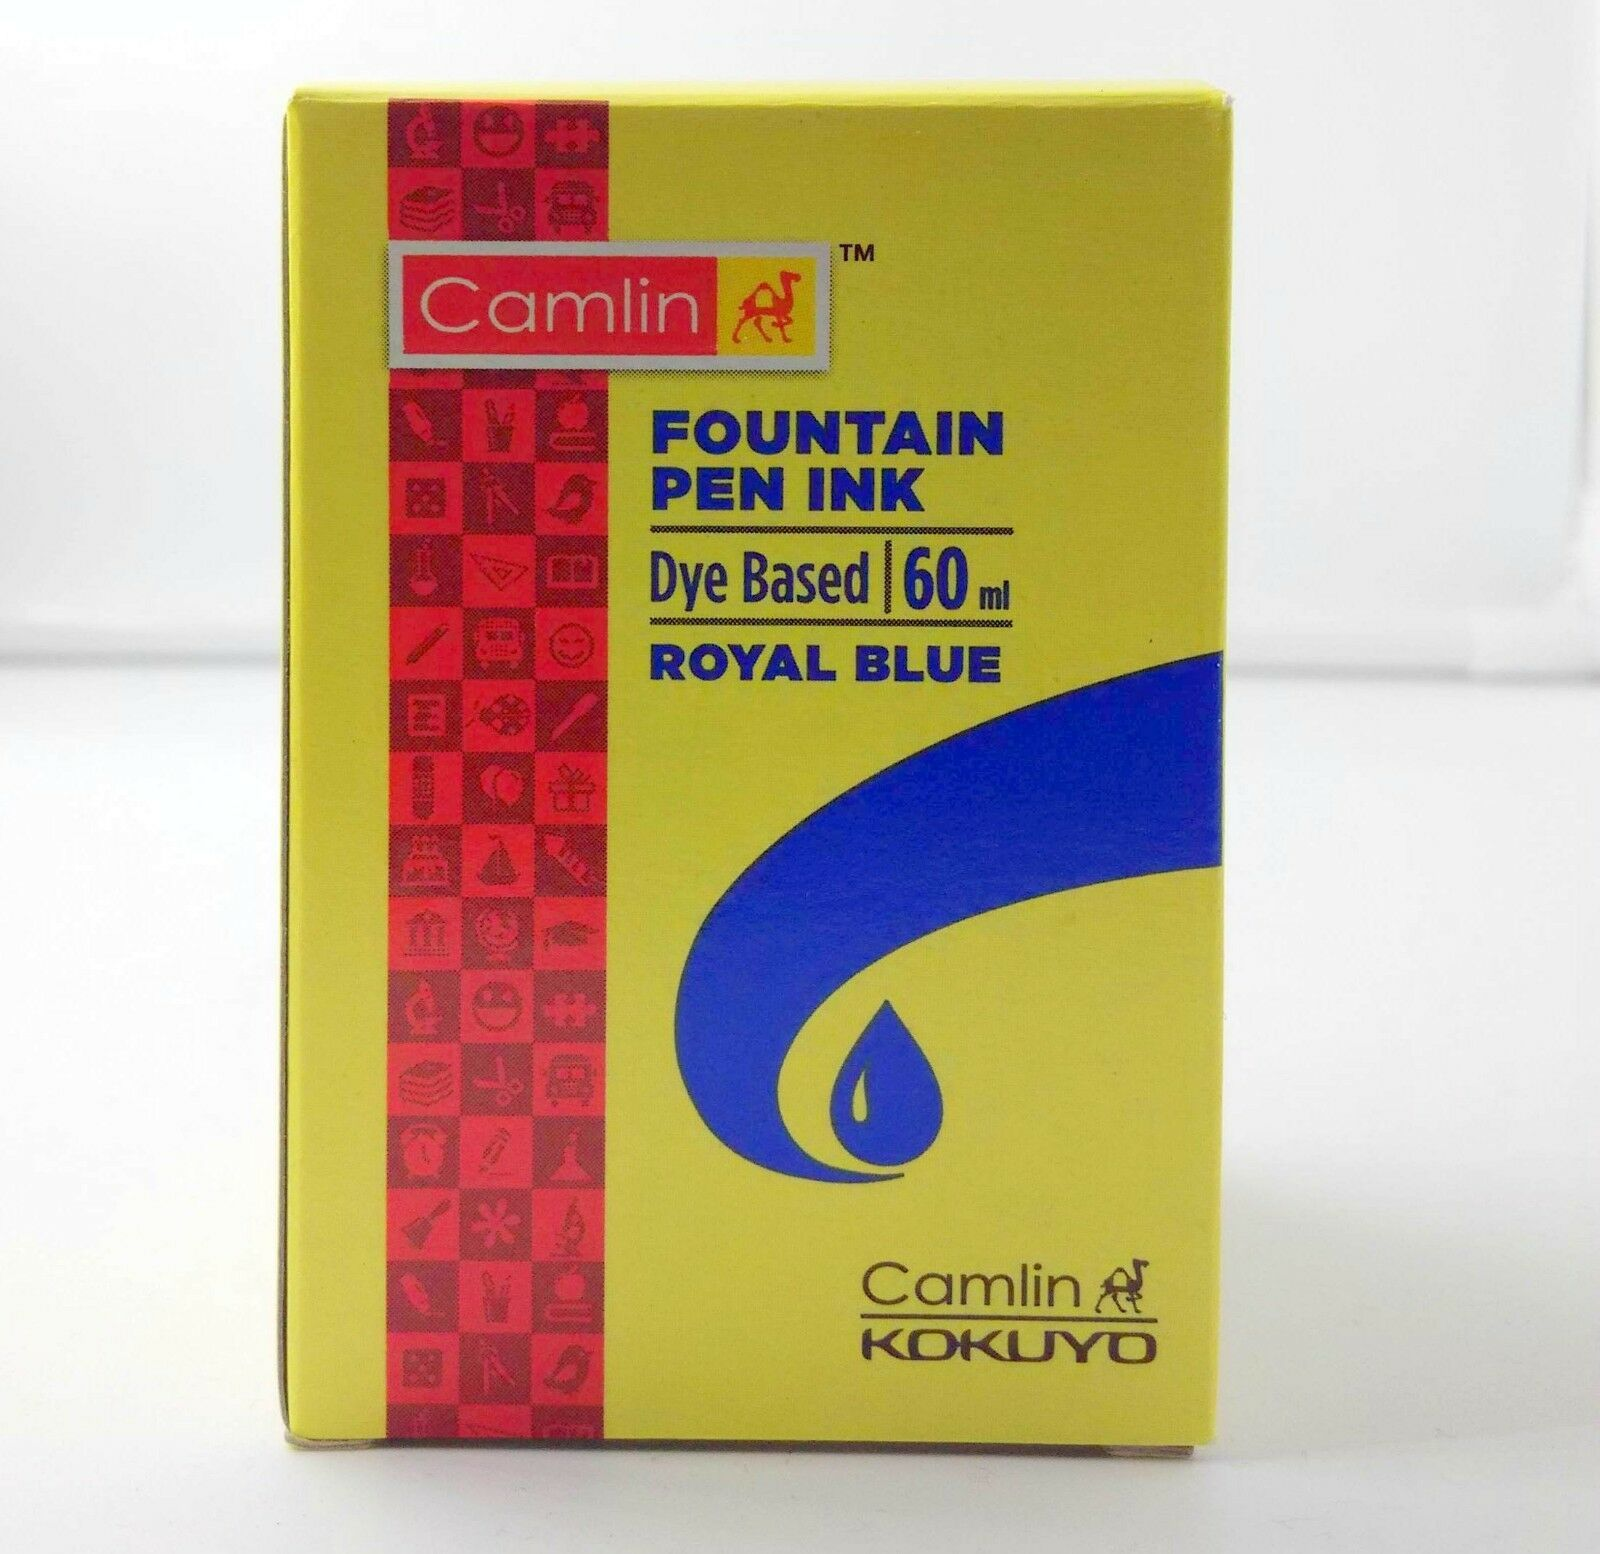 5 Camel Fountain Pen Ink ROYAL BLUE Bottles 60 ml 2 oz Camlin 5 qty New Sealed